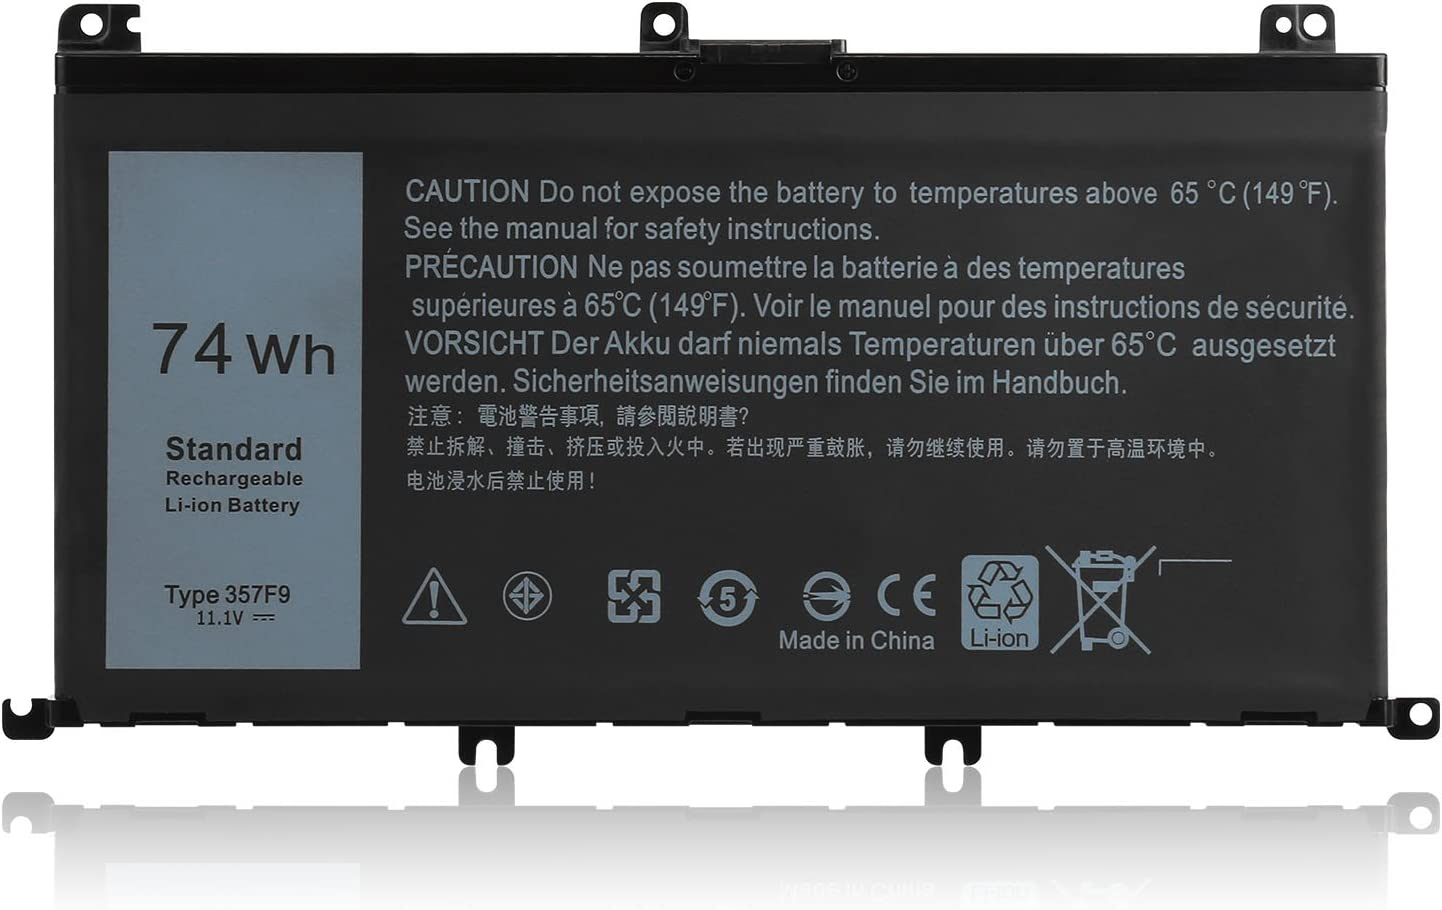 CPY 357F9 Replacement Laptop Battery for Dell Inspiron 7000 Dump 15 7559 7557 INS15PD Series 0GFJ6 71JF4 11.1V 74Wh